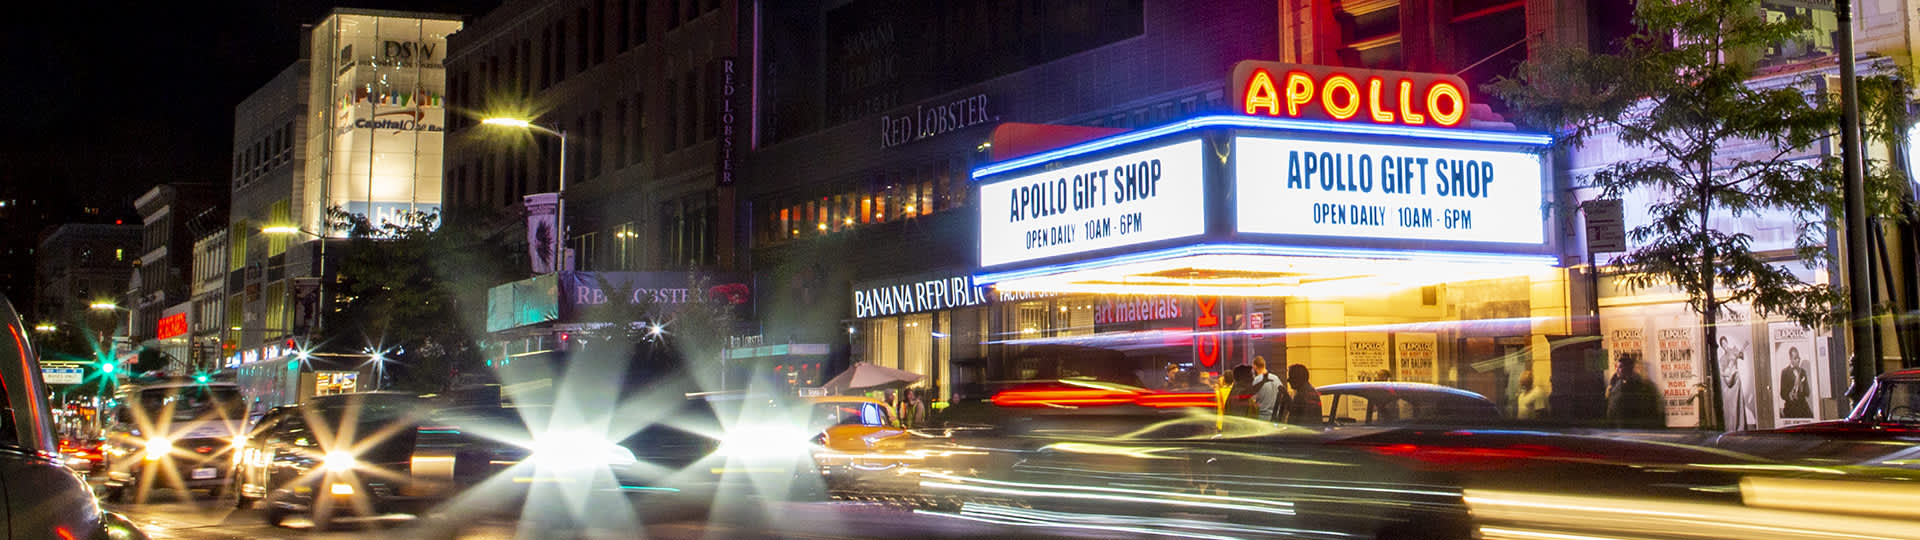 Harlem, Vida nocturna, Nueva York, Apollo Theater